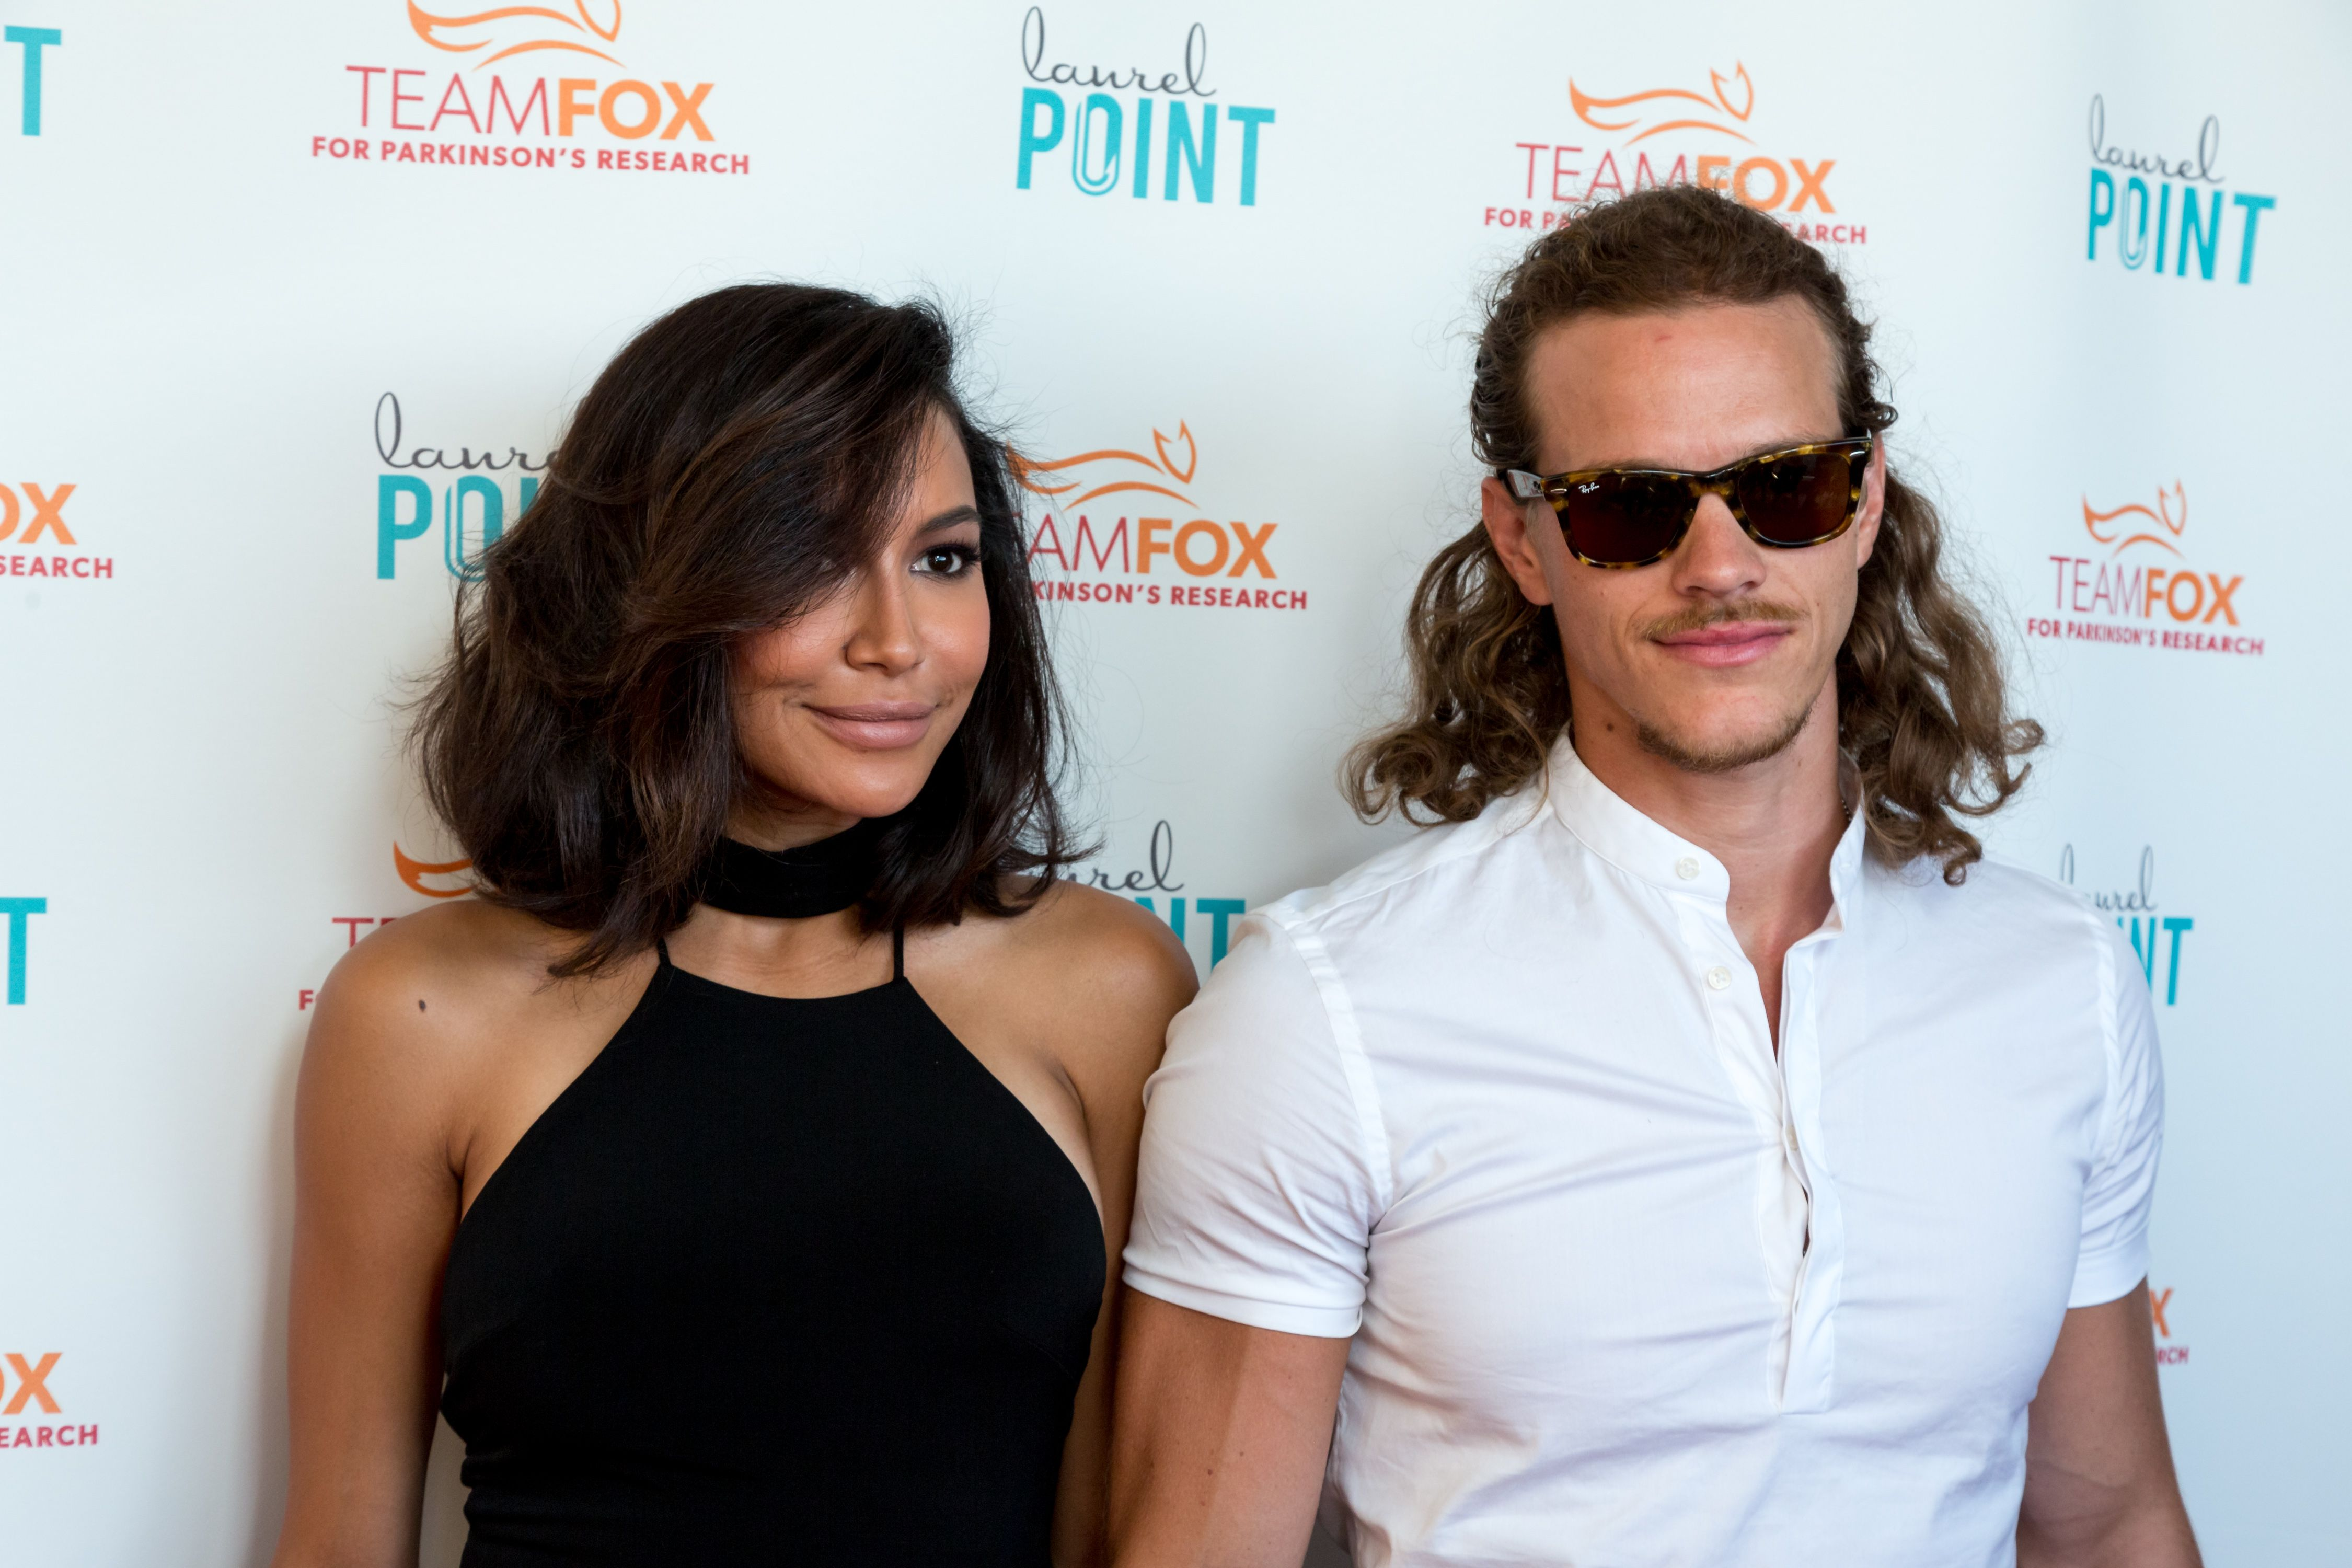 Naya Rivera and Ryan Dorsey arrive at the Raising The Bar To End Parkinson's at Laurel Point on July 27, 2016 in Studio City, California | Photo: Getty Images